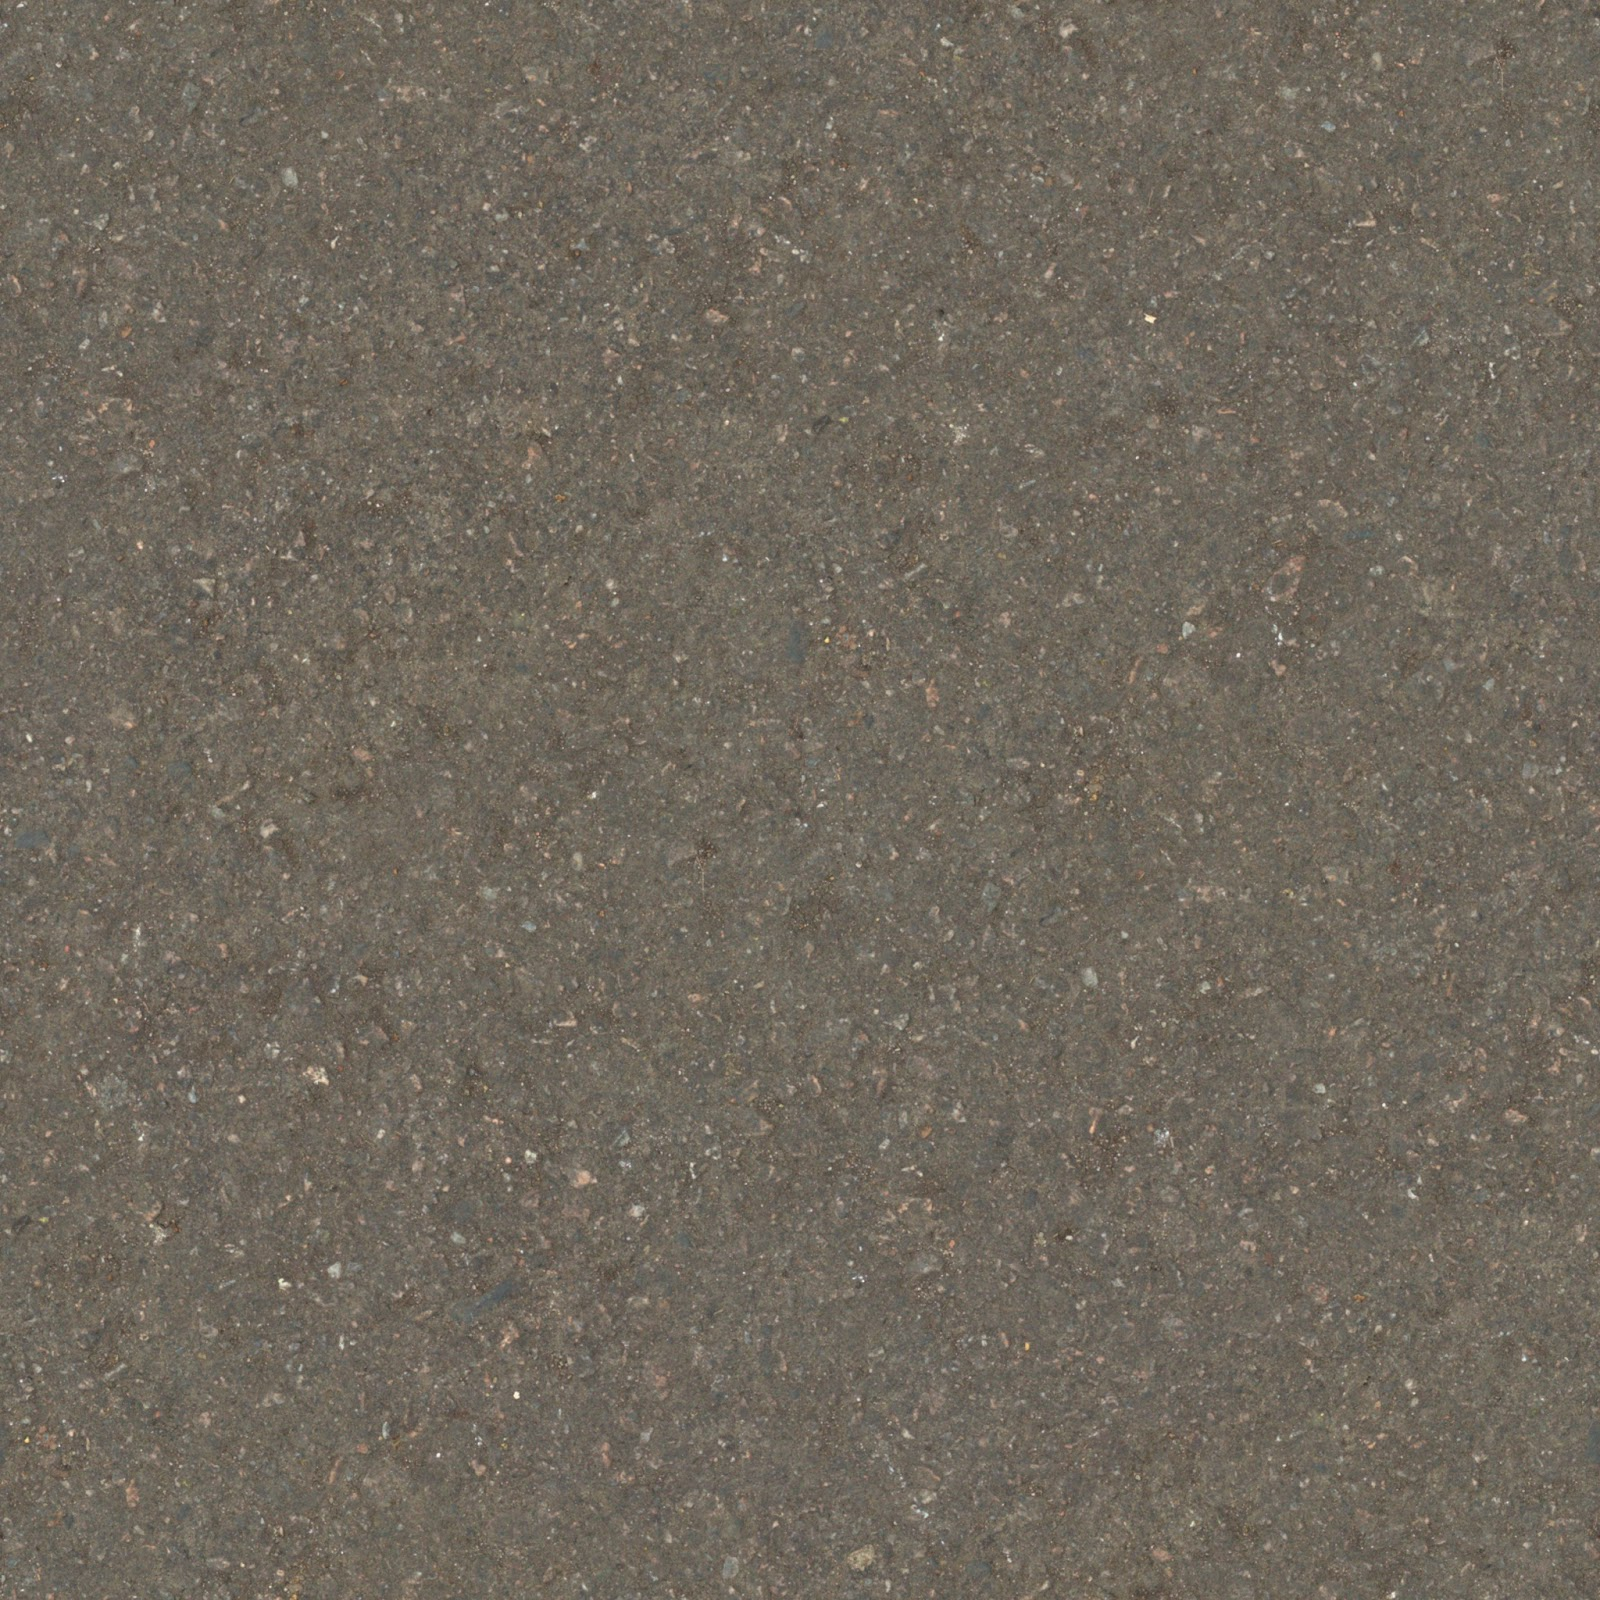 Dirt ground floor feb_2015 seamless texture 2048x2048